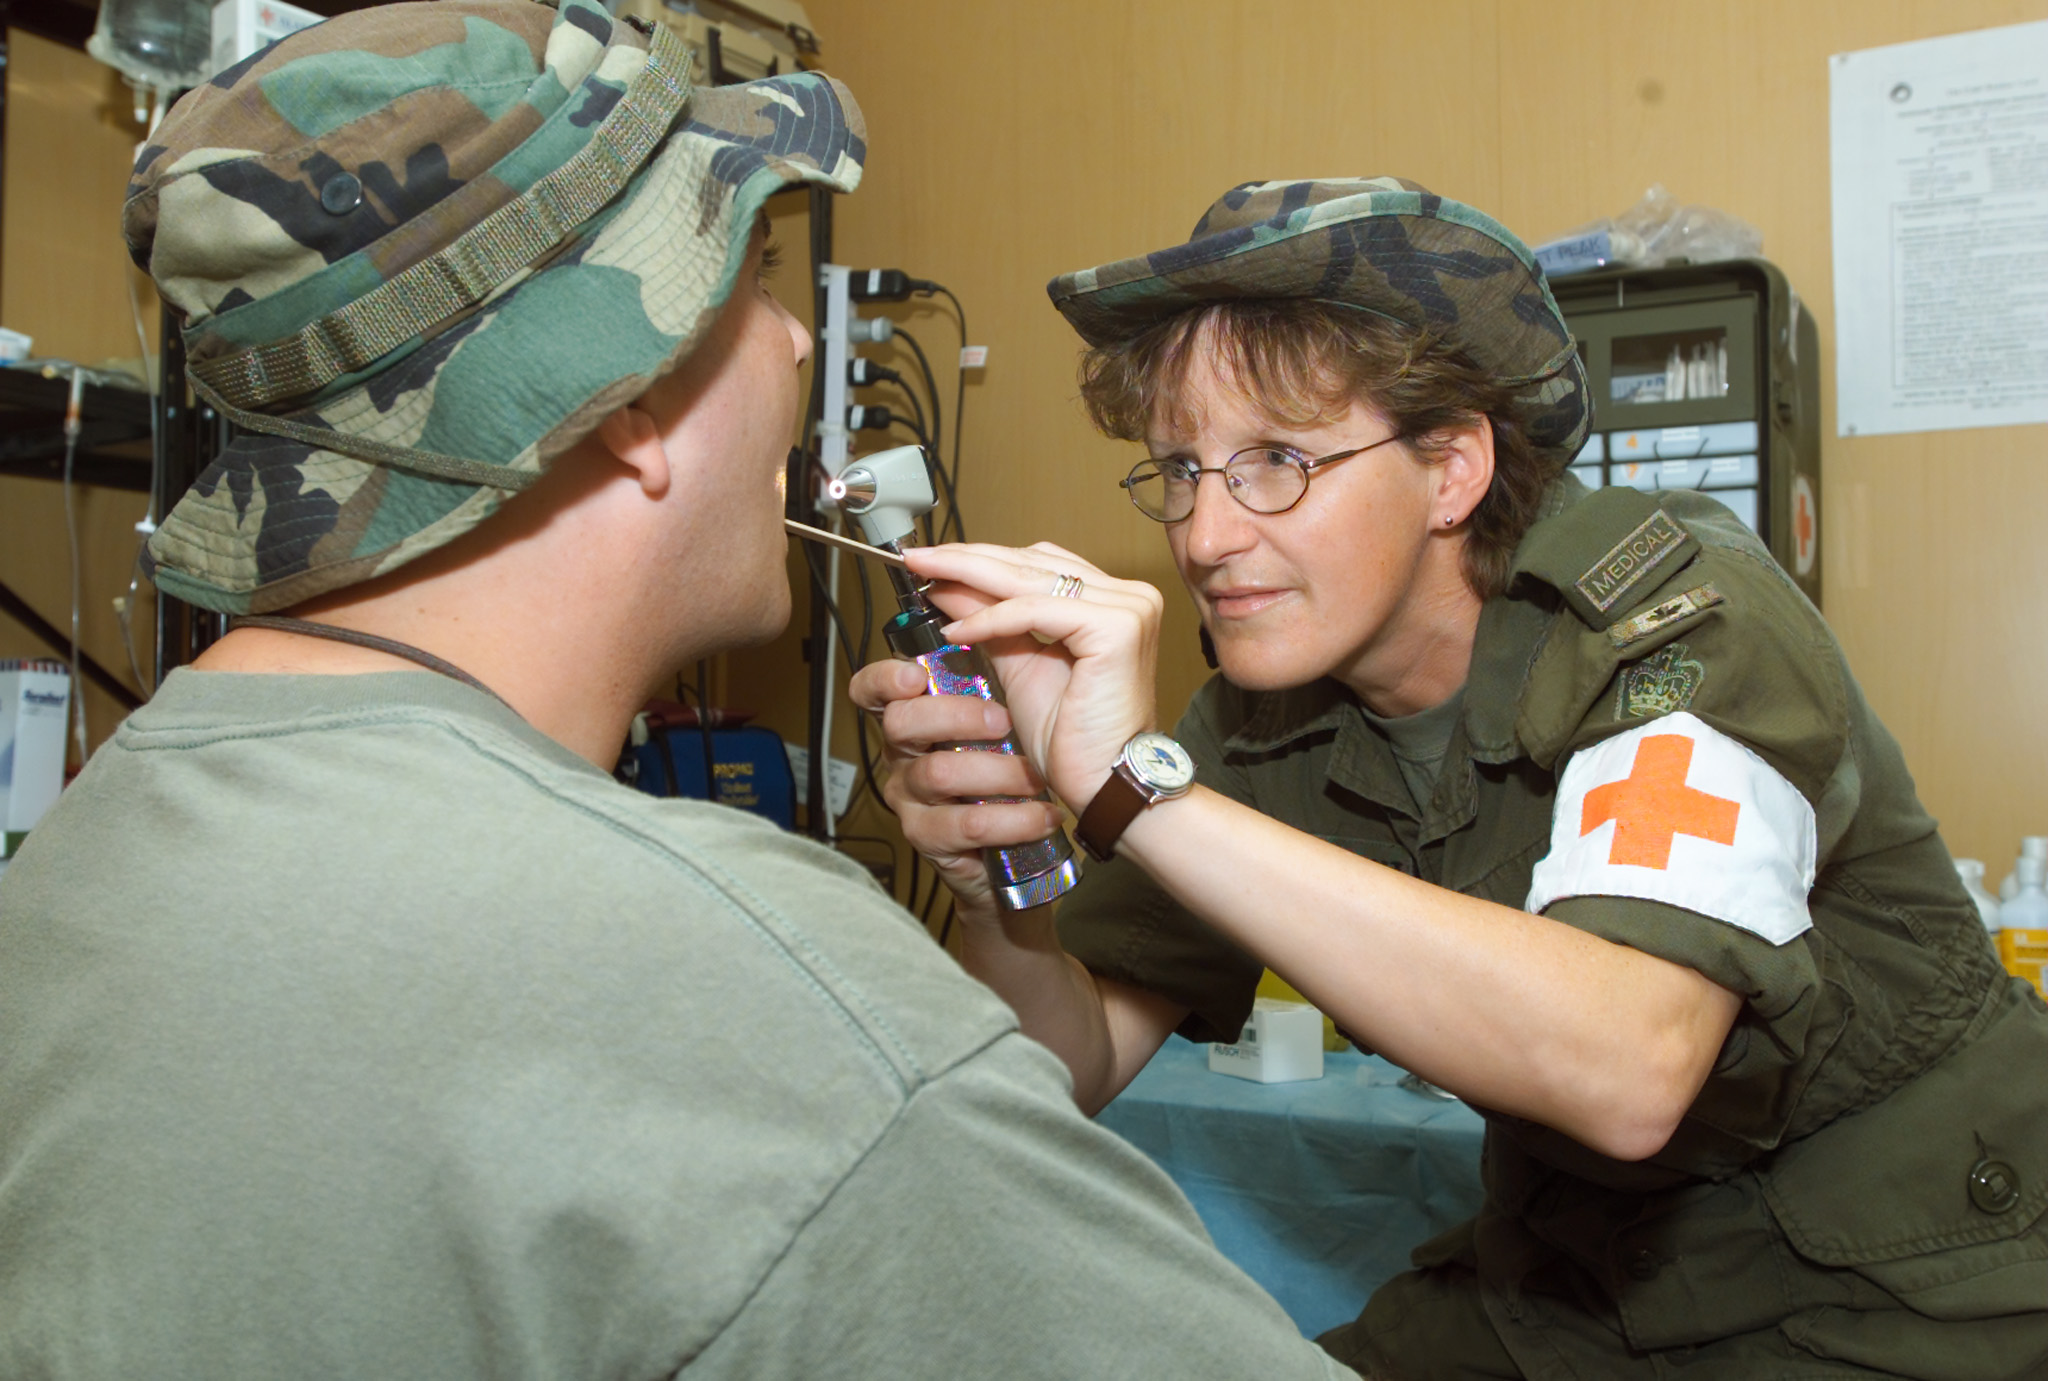 On February 12, 2002, Warrant Officer Dianne Maidment, a physician's assistant from 14 Wing Greenwood, Nova Scotia, checks a patient's throat in a medical clinic in the Arabian Gulf region, during Operation Apollo. PHOTO: Master Corporal Jeff D. de Molitor, APD02-0009a-01